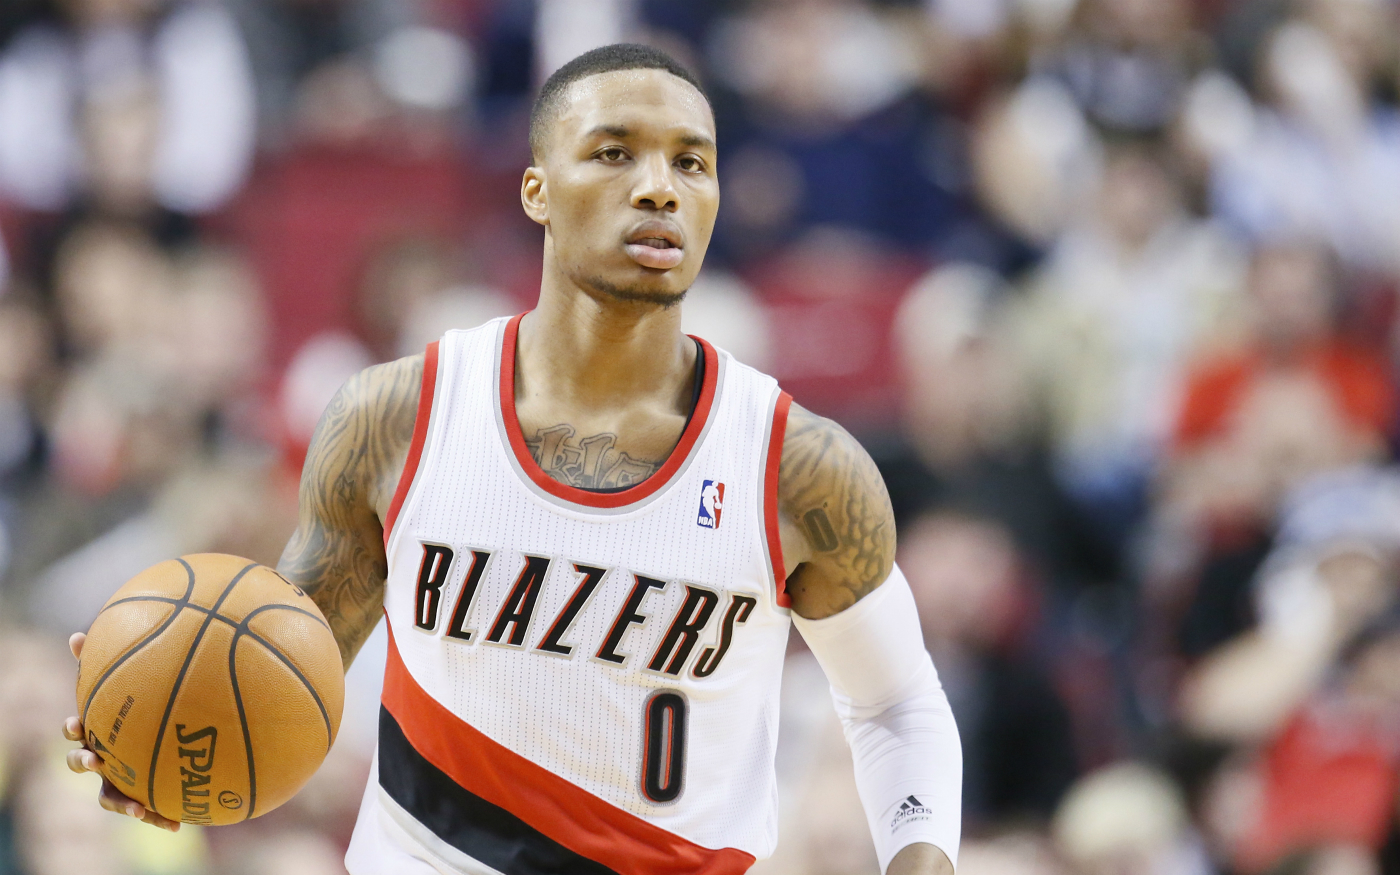 Damian Lillard brille, les Blazers bombardent face aux Pacers